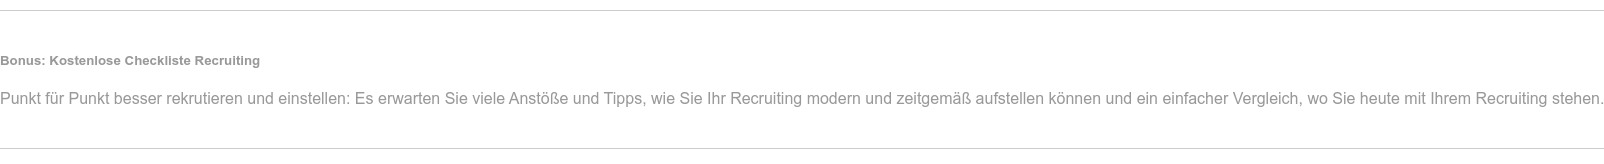 Checkliste Recruiting